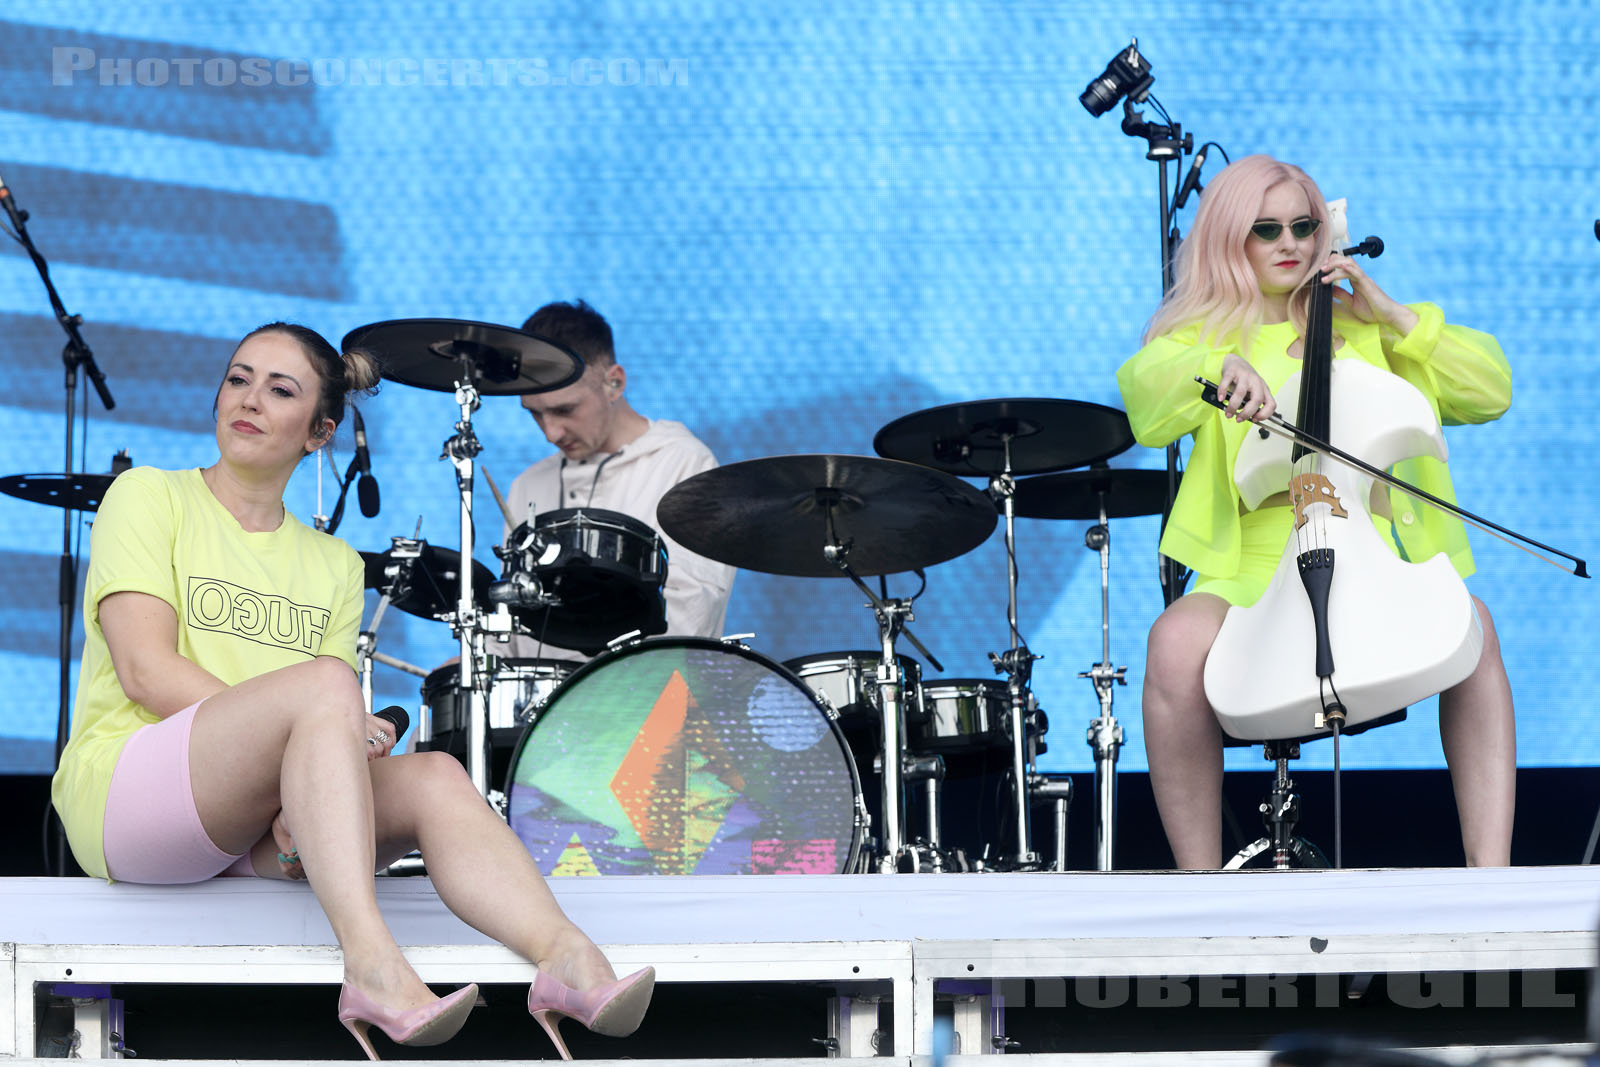 CLEAN BANDIT - 2019-07-21 - PARIS - Hippodrome de Longchamp - Main Stage 2